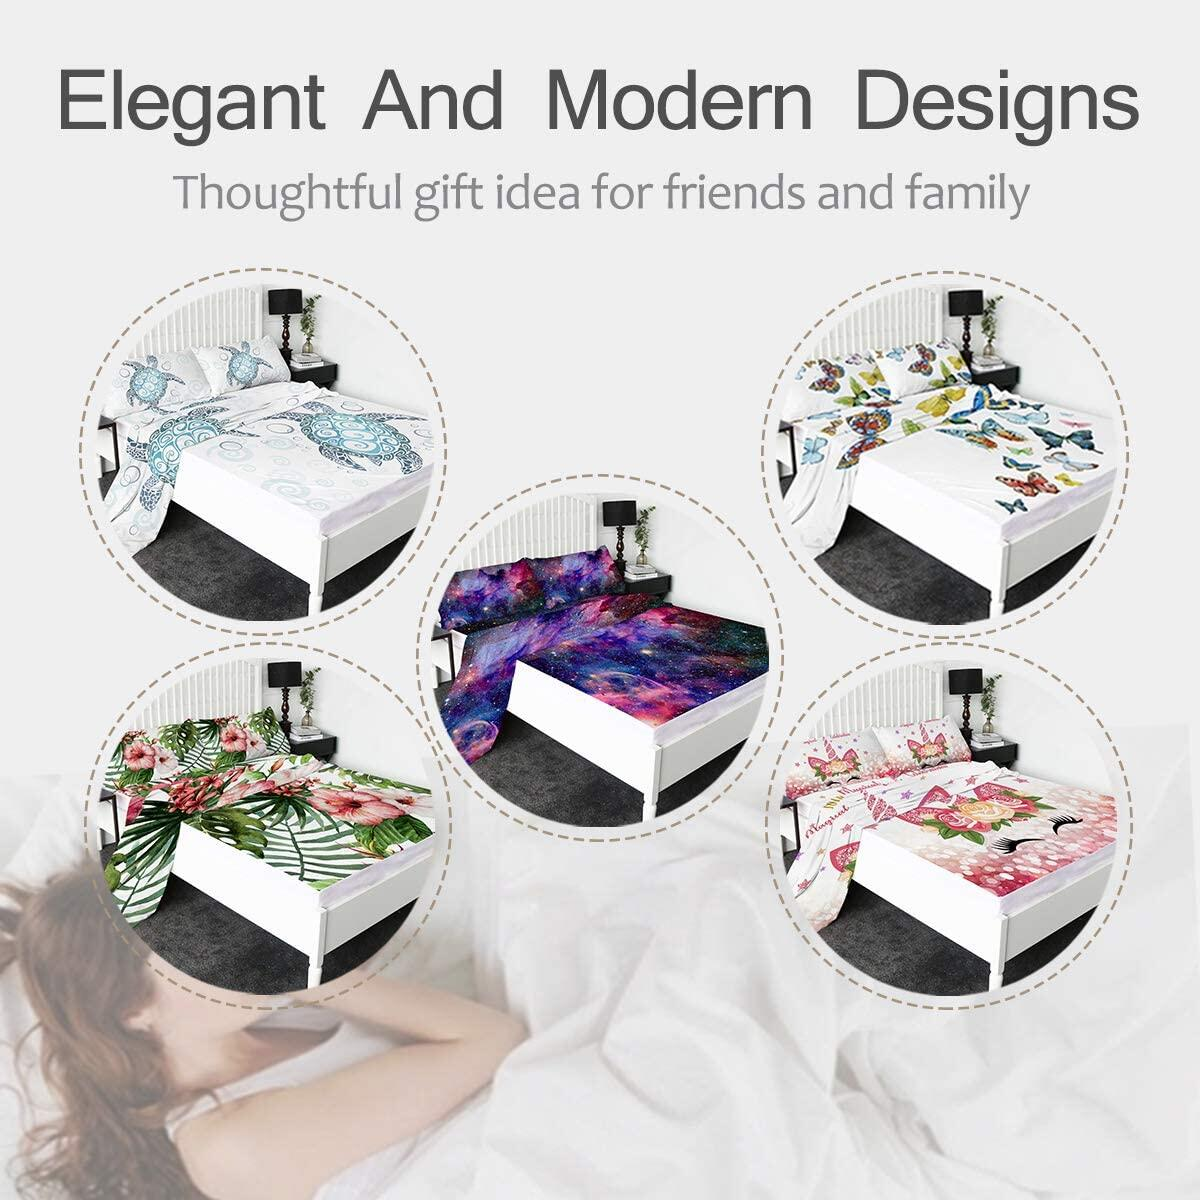 Sleepwish 4-Piece Bed Sheets 3D Printed Fitted Sheets Premium Quality 1800 Microfiber Non-Fade Breathable Soft -Includes 1 Flat Sheet,1 Fitted Sheet,2 Shams (Unicorn Floral, Twin)